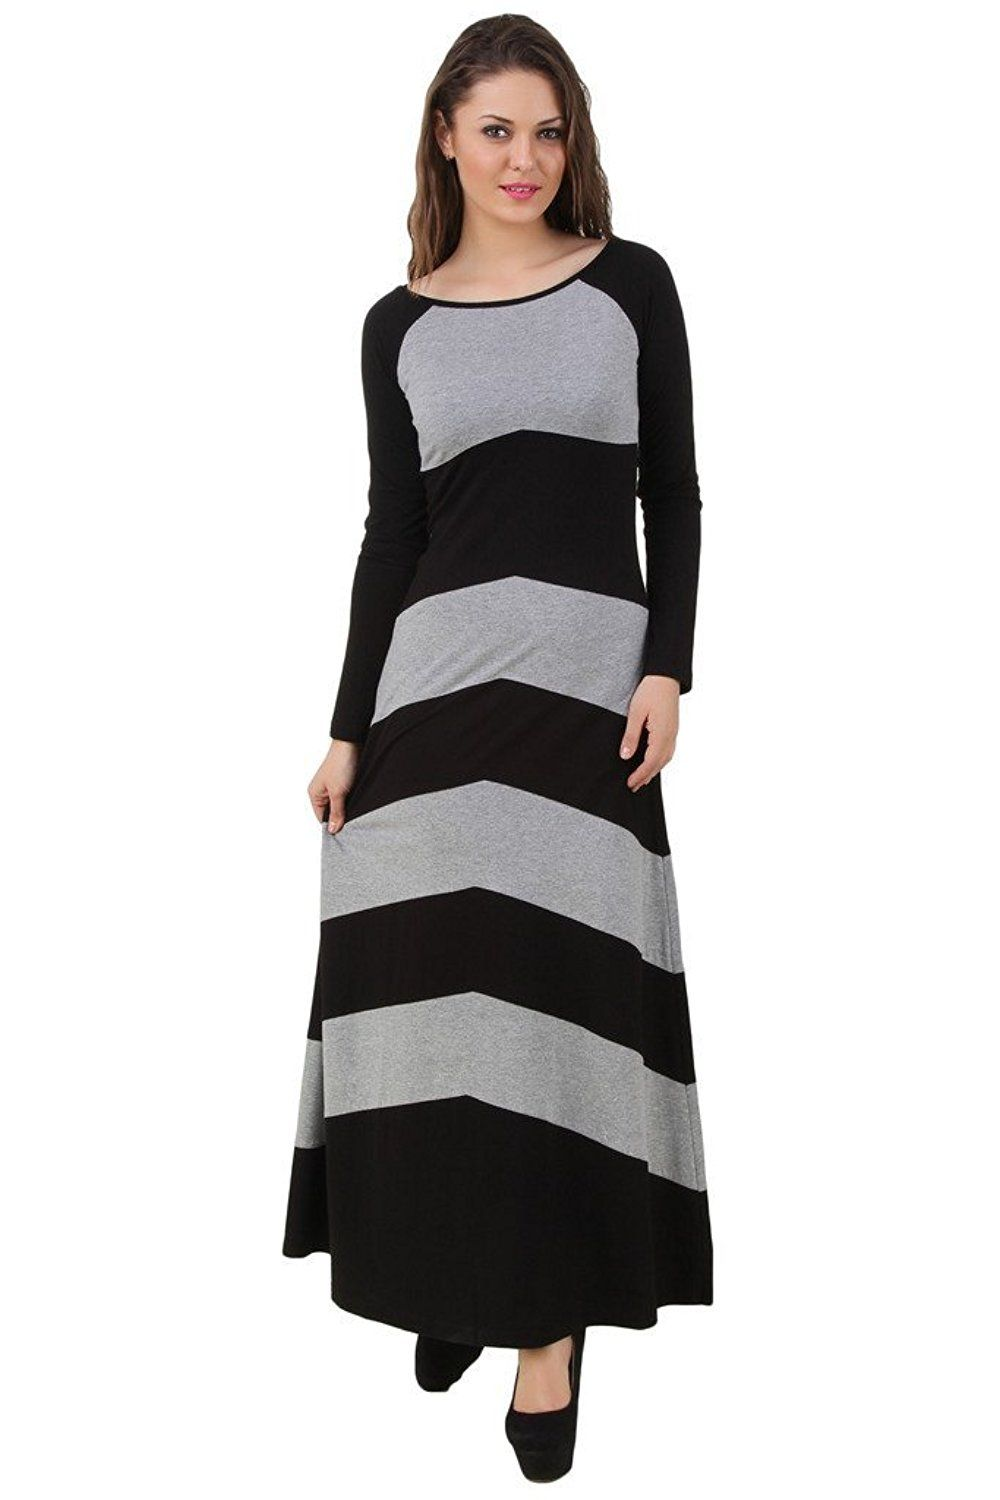 adc801610e7 Texco long grey and black maxi dress  Amazon.in  Clothing   Accessories